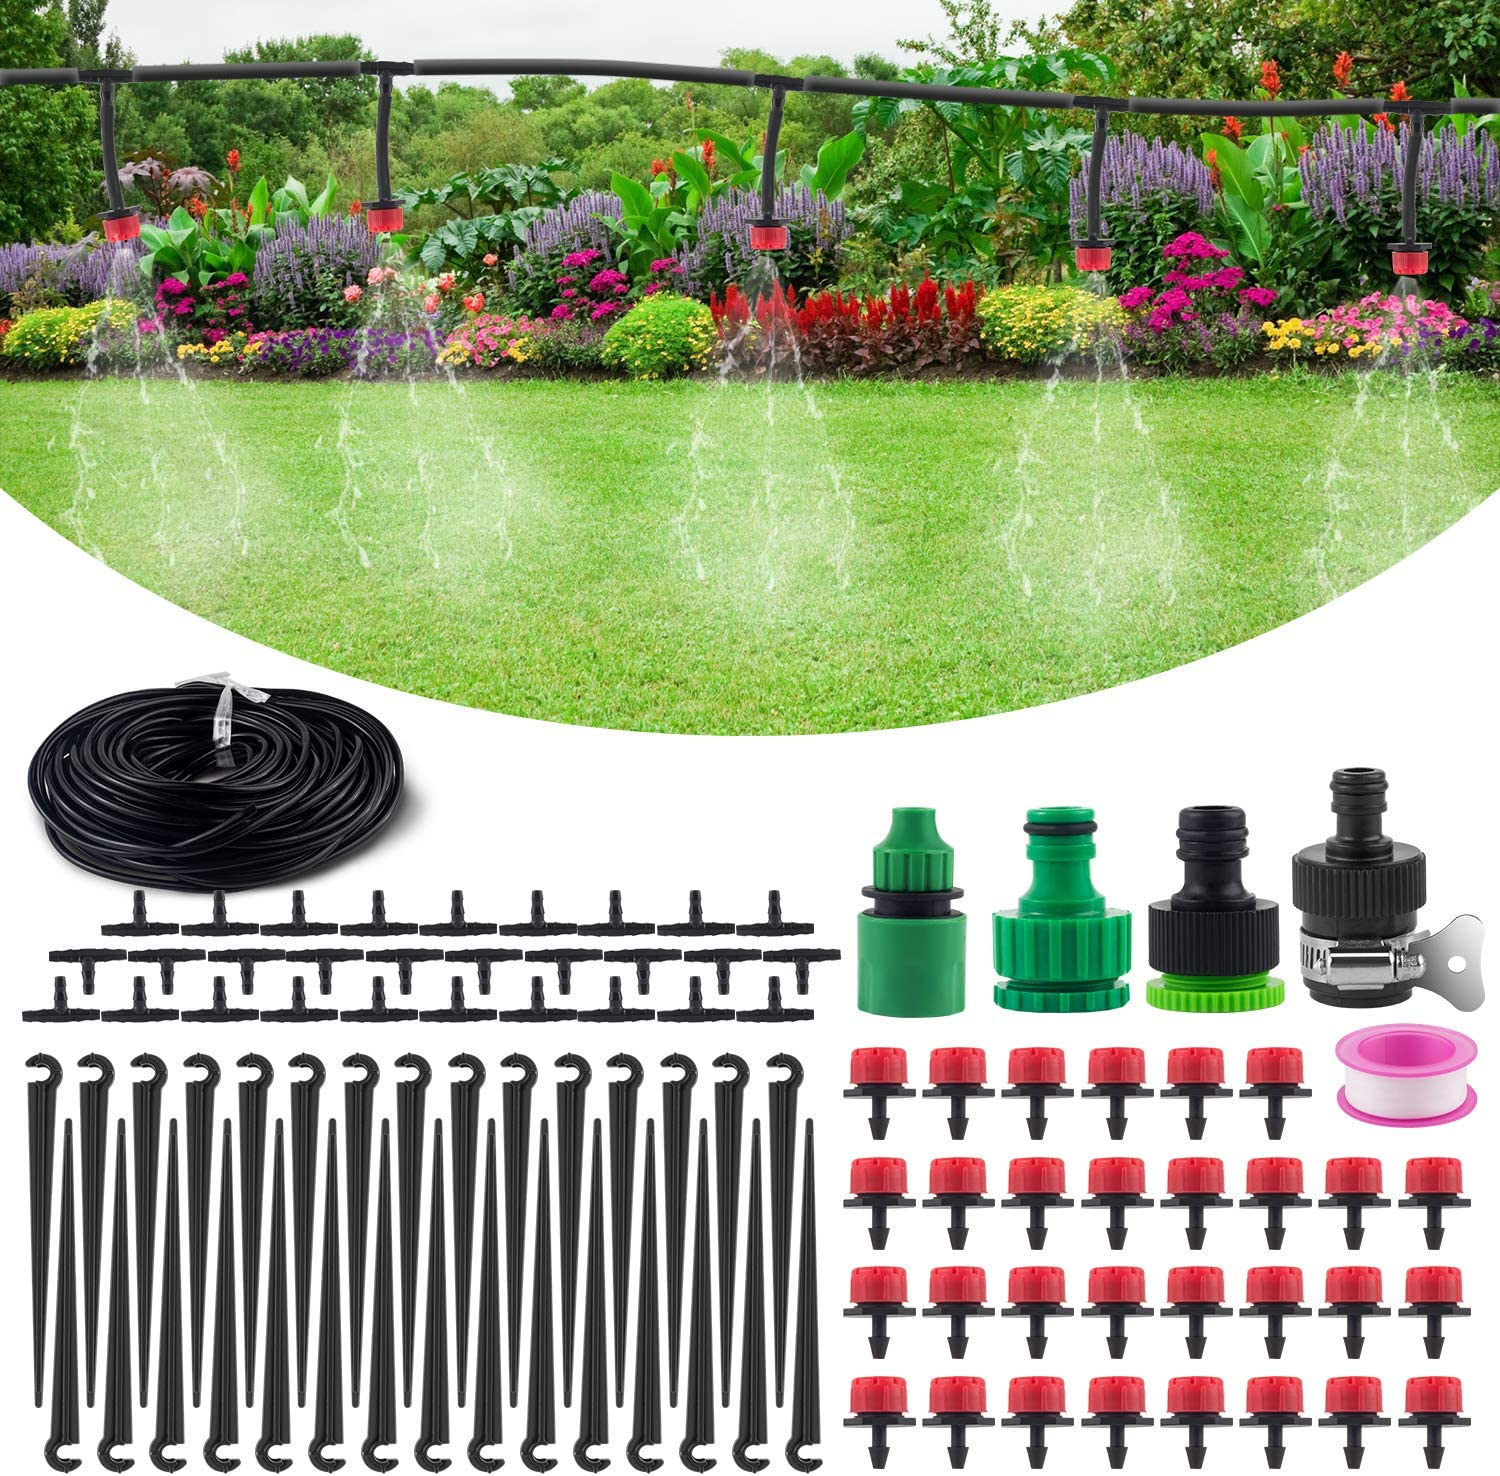 Gardening gadgets automatic watering device drip irrigation soil water tank Hot